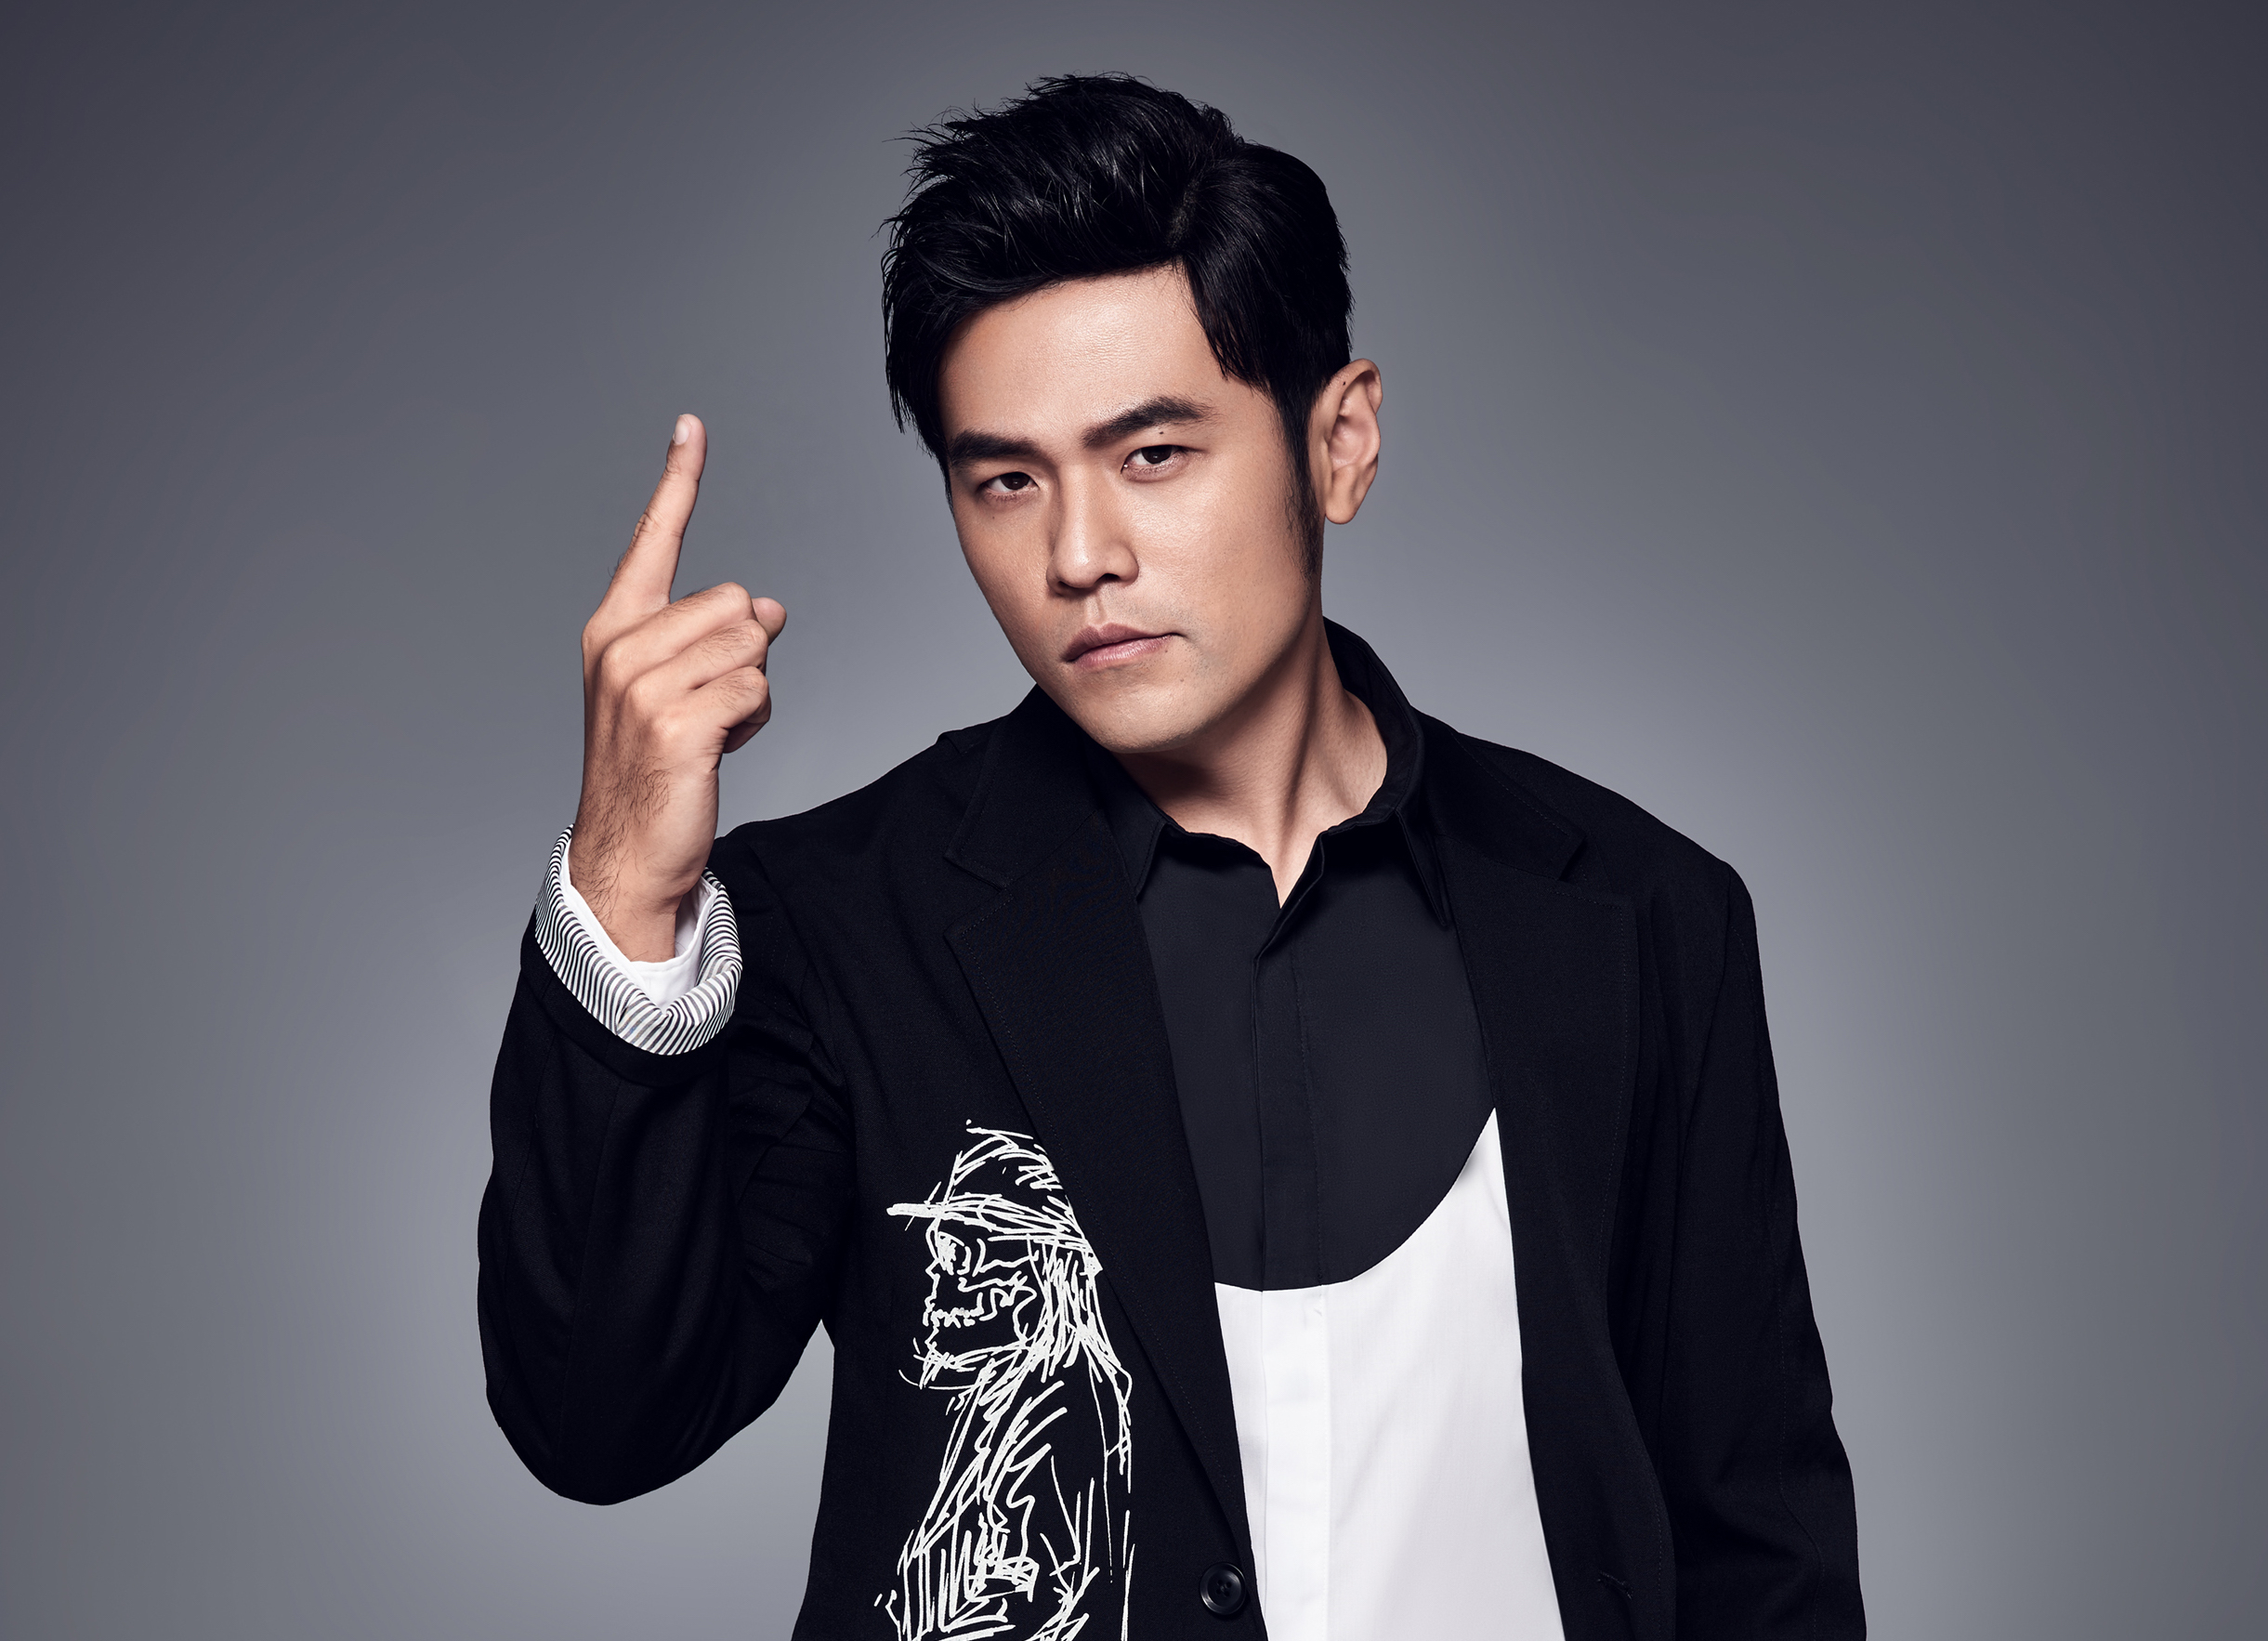 Desk For Computer Jay Chou Wallpapers Images Photos Pictures Backgrounds